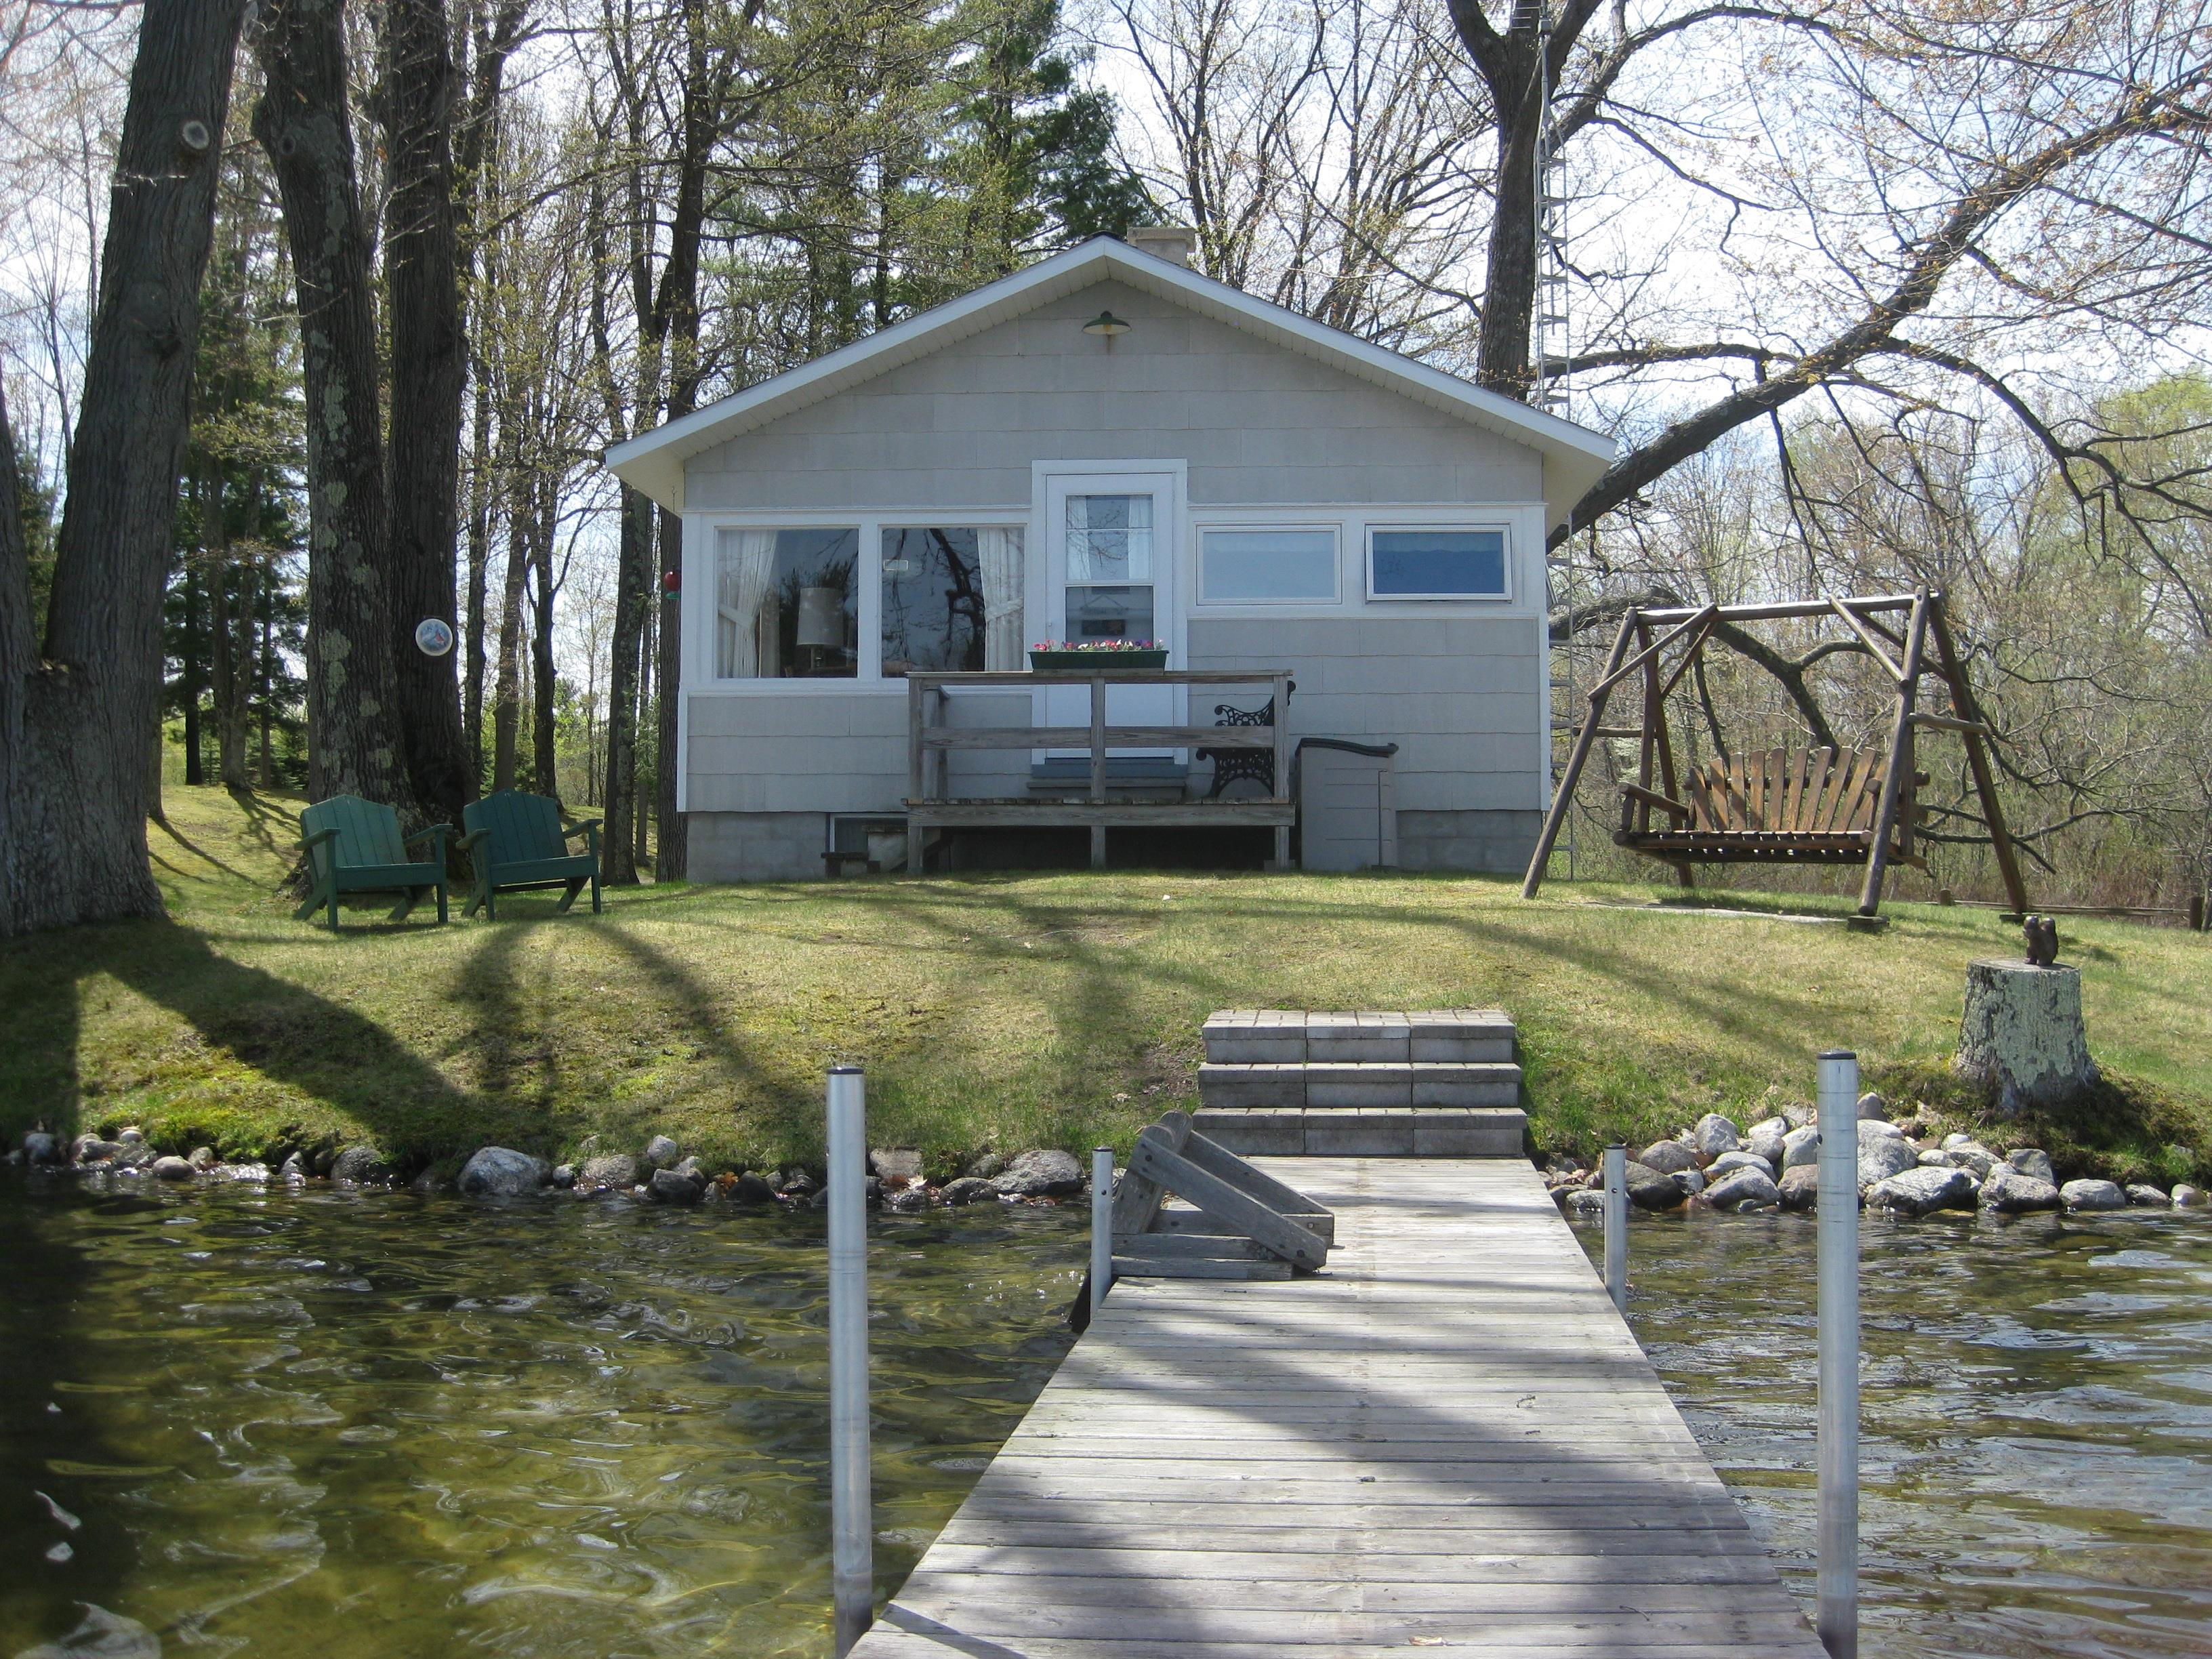 waterfront cottage on acreage for sale on big bass lake near irons